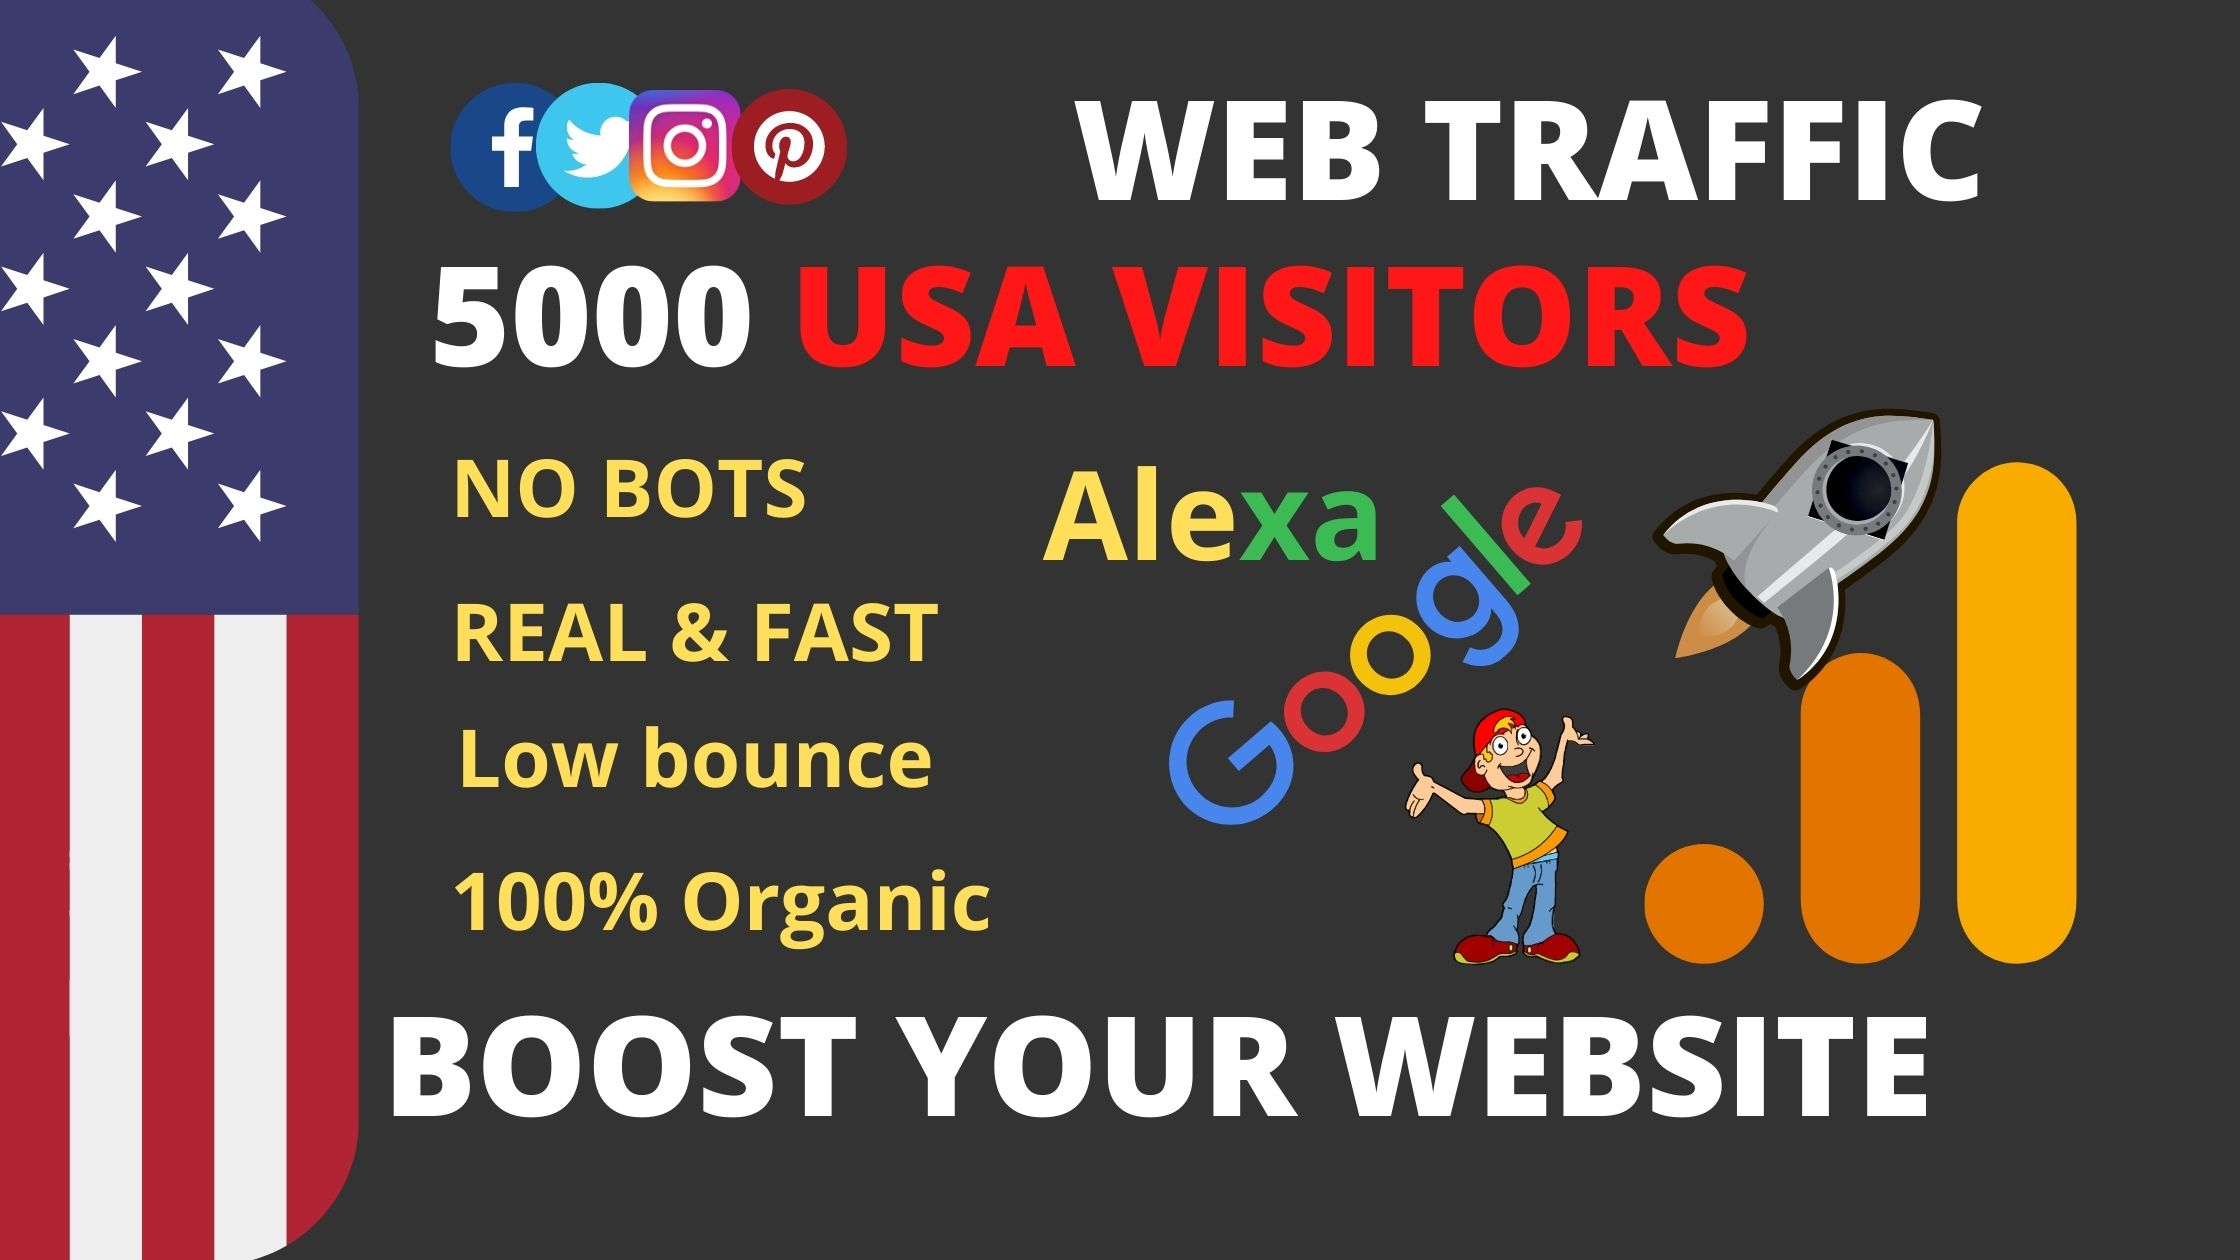 I will send keyword target 5000 USA website traffic with low bounce rate